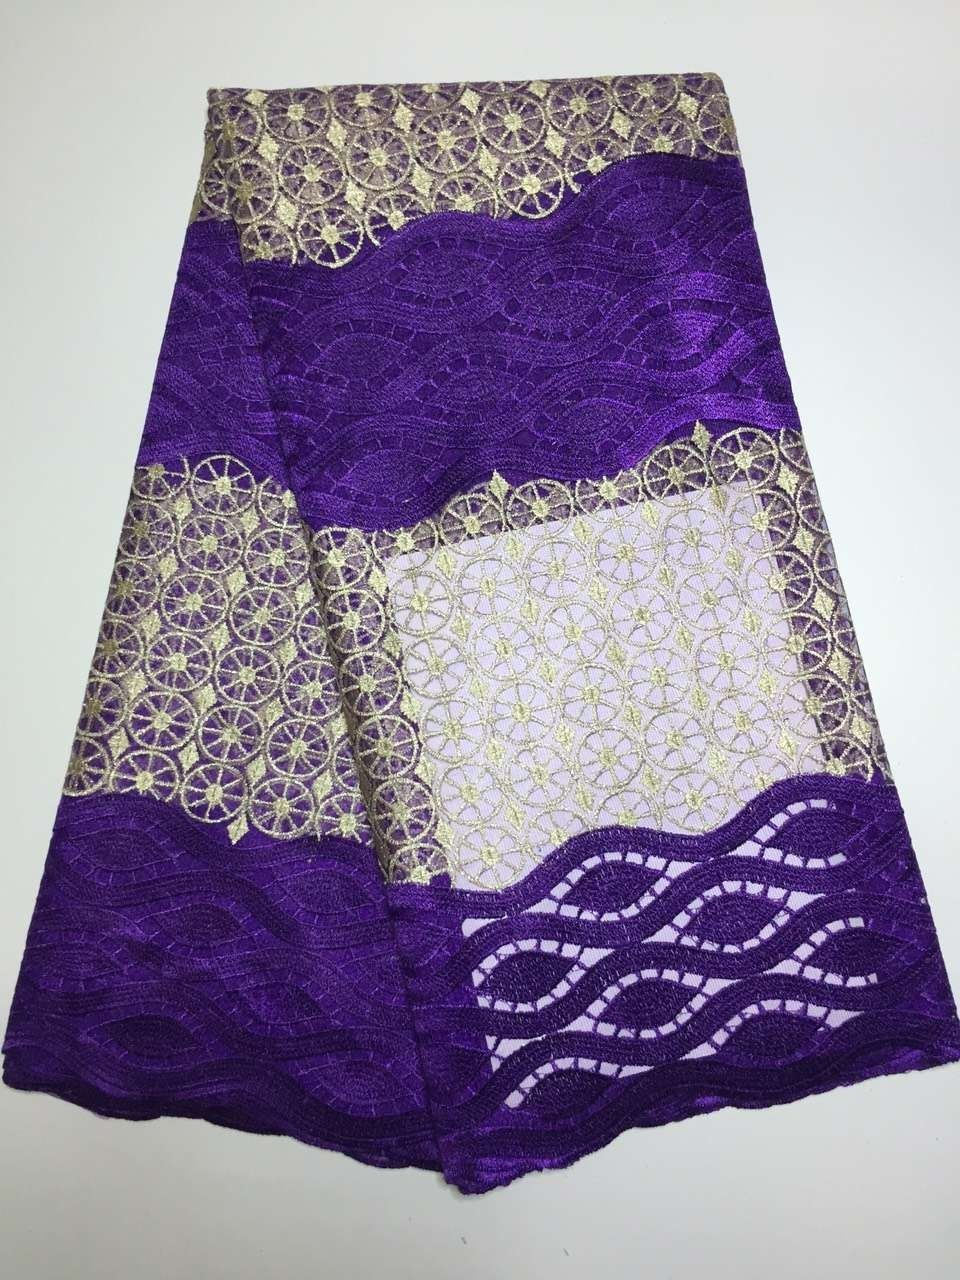 Wedding decorations nigeria  Y  new design french lace purple bridal embroidered tulle lace